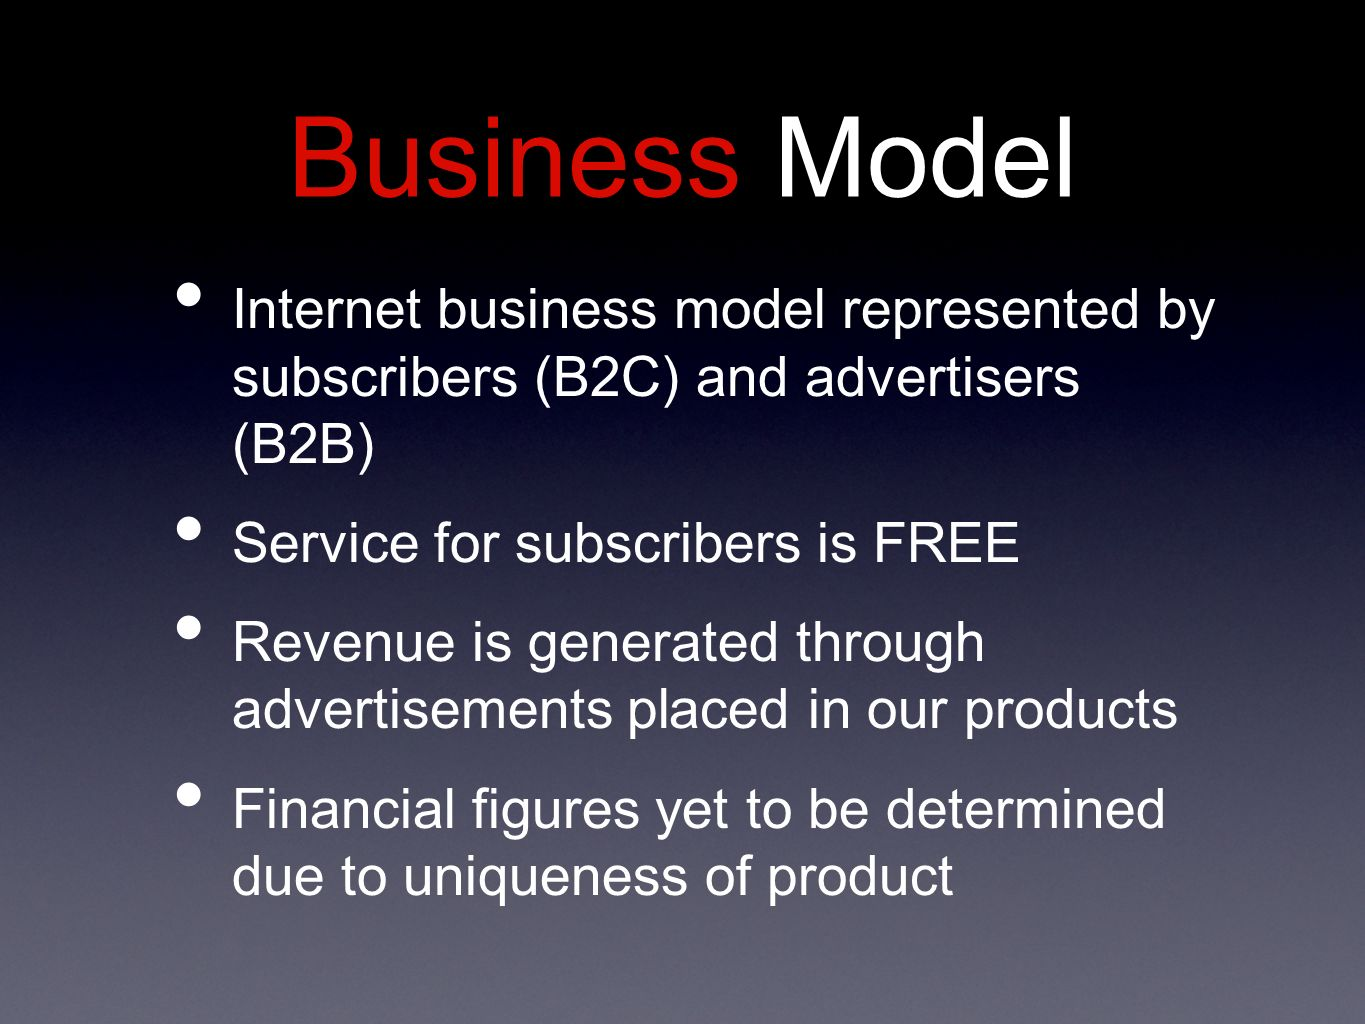 Business Model Internet business model represented by subscribers (B2C) and advertisers (B2B) Service for subscribers is FREE Revenue is generated through advertisements placed in our products Financial figures yet to be determined due to uniqueness of product